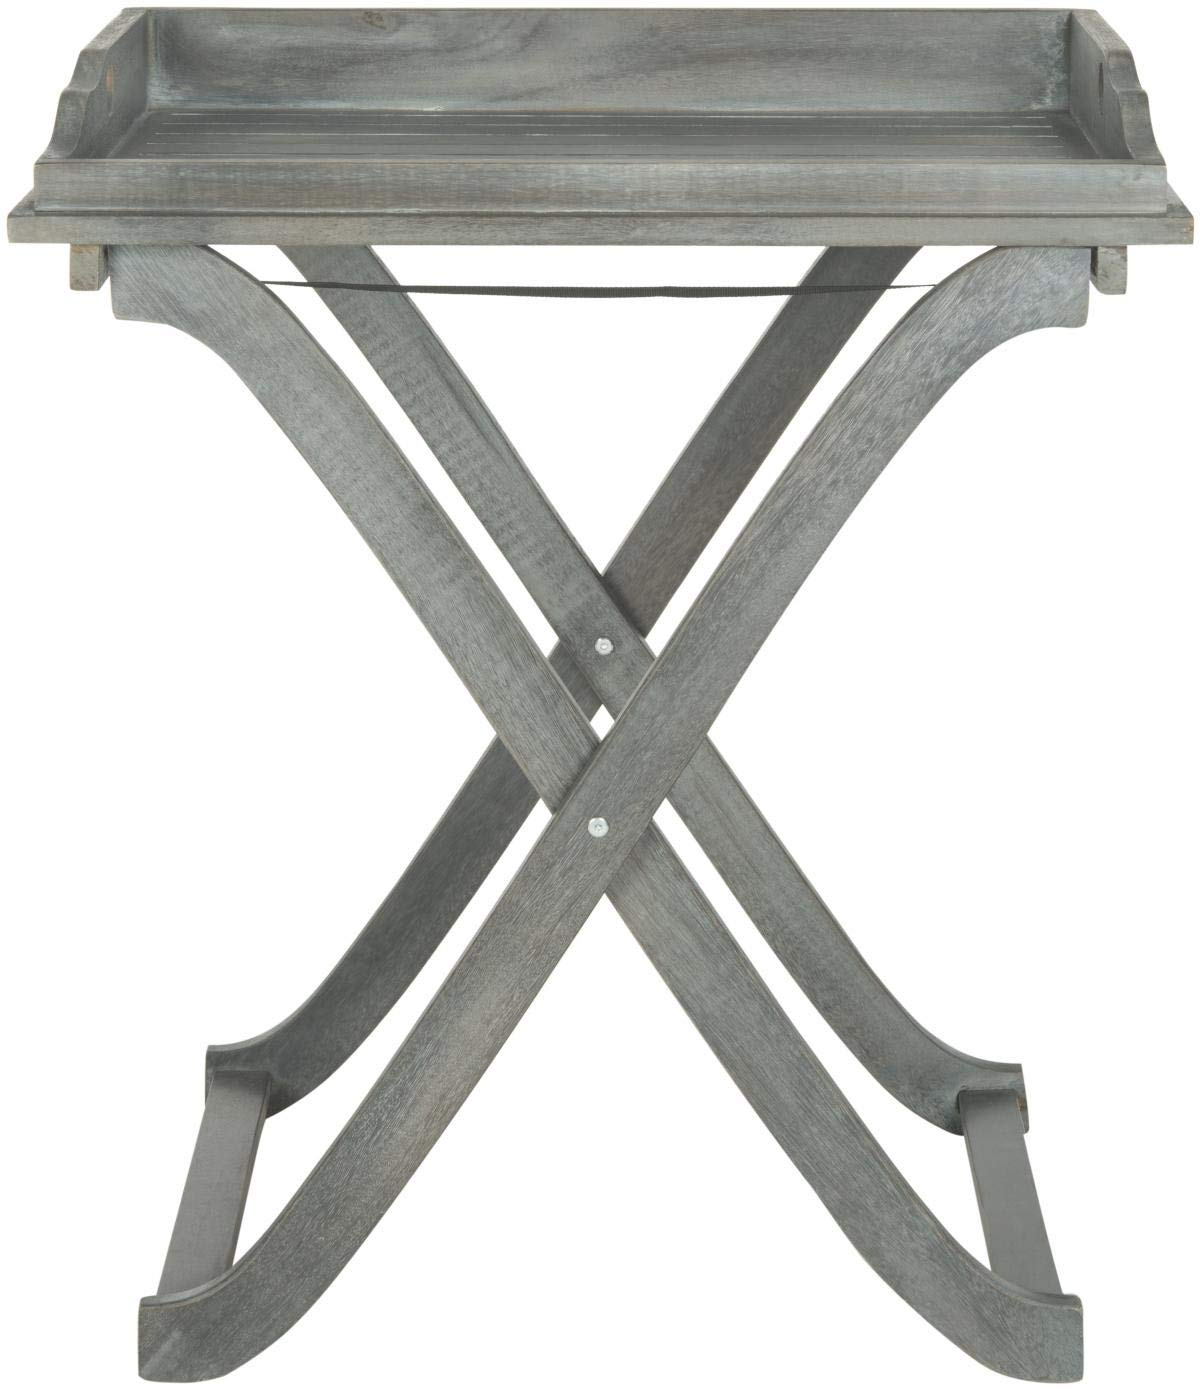 Safavieh Outdoor Living Collection Covina Tray Table, Ash Grey